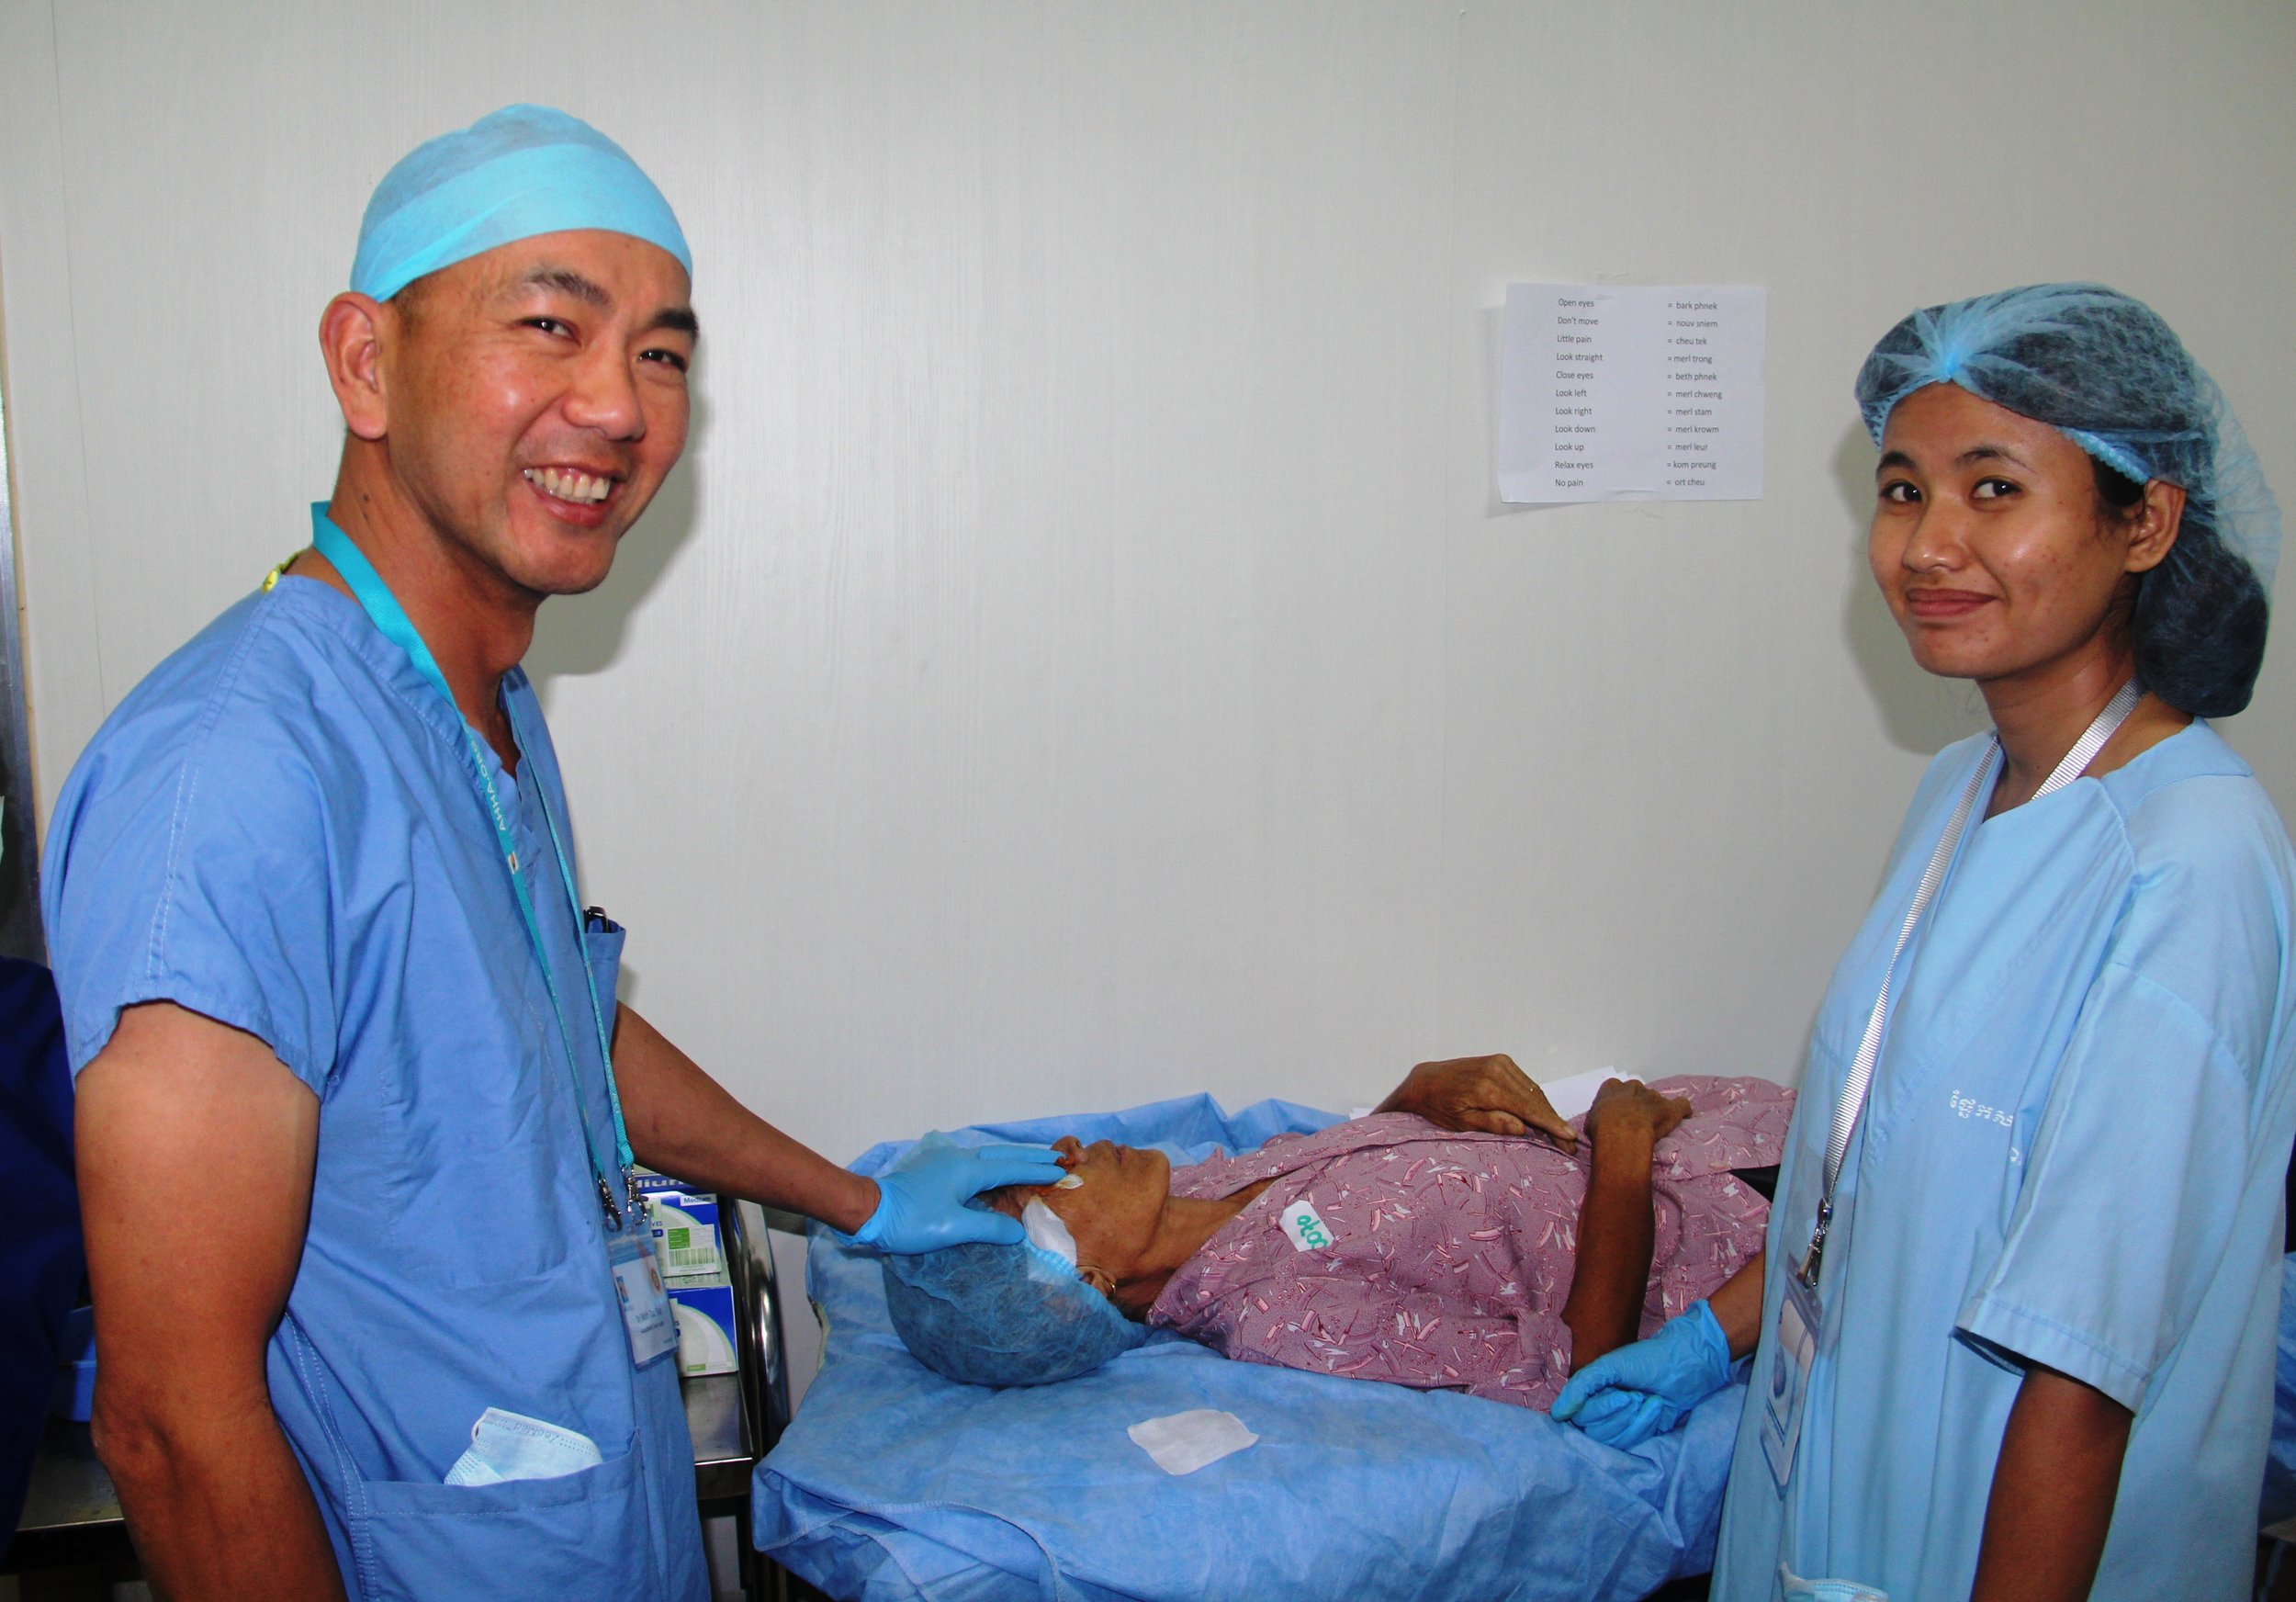 Anaesthetist and medical student volunteer at work